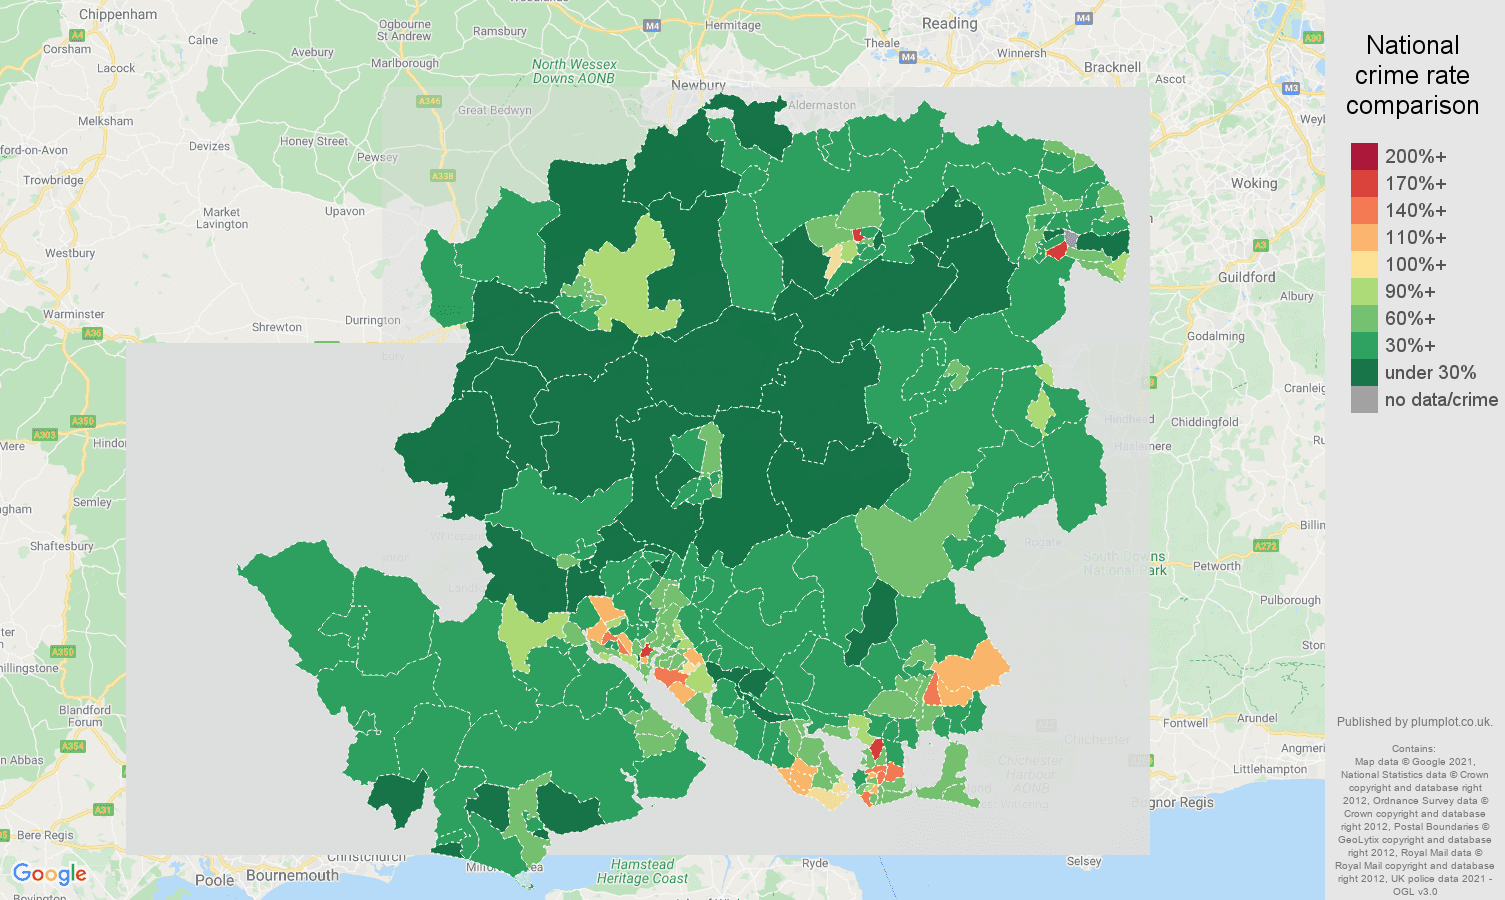 Hampshire antisocial behaviour crime rate comparison map